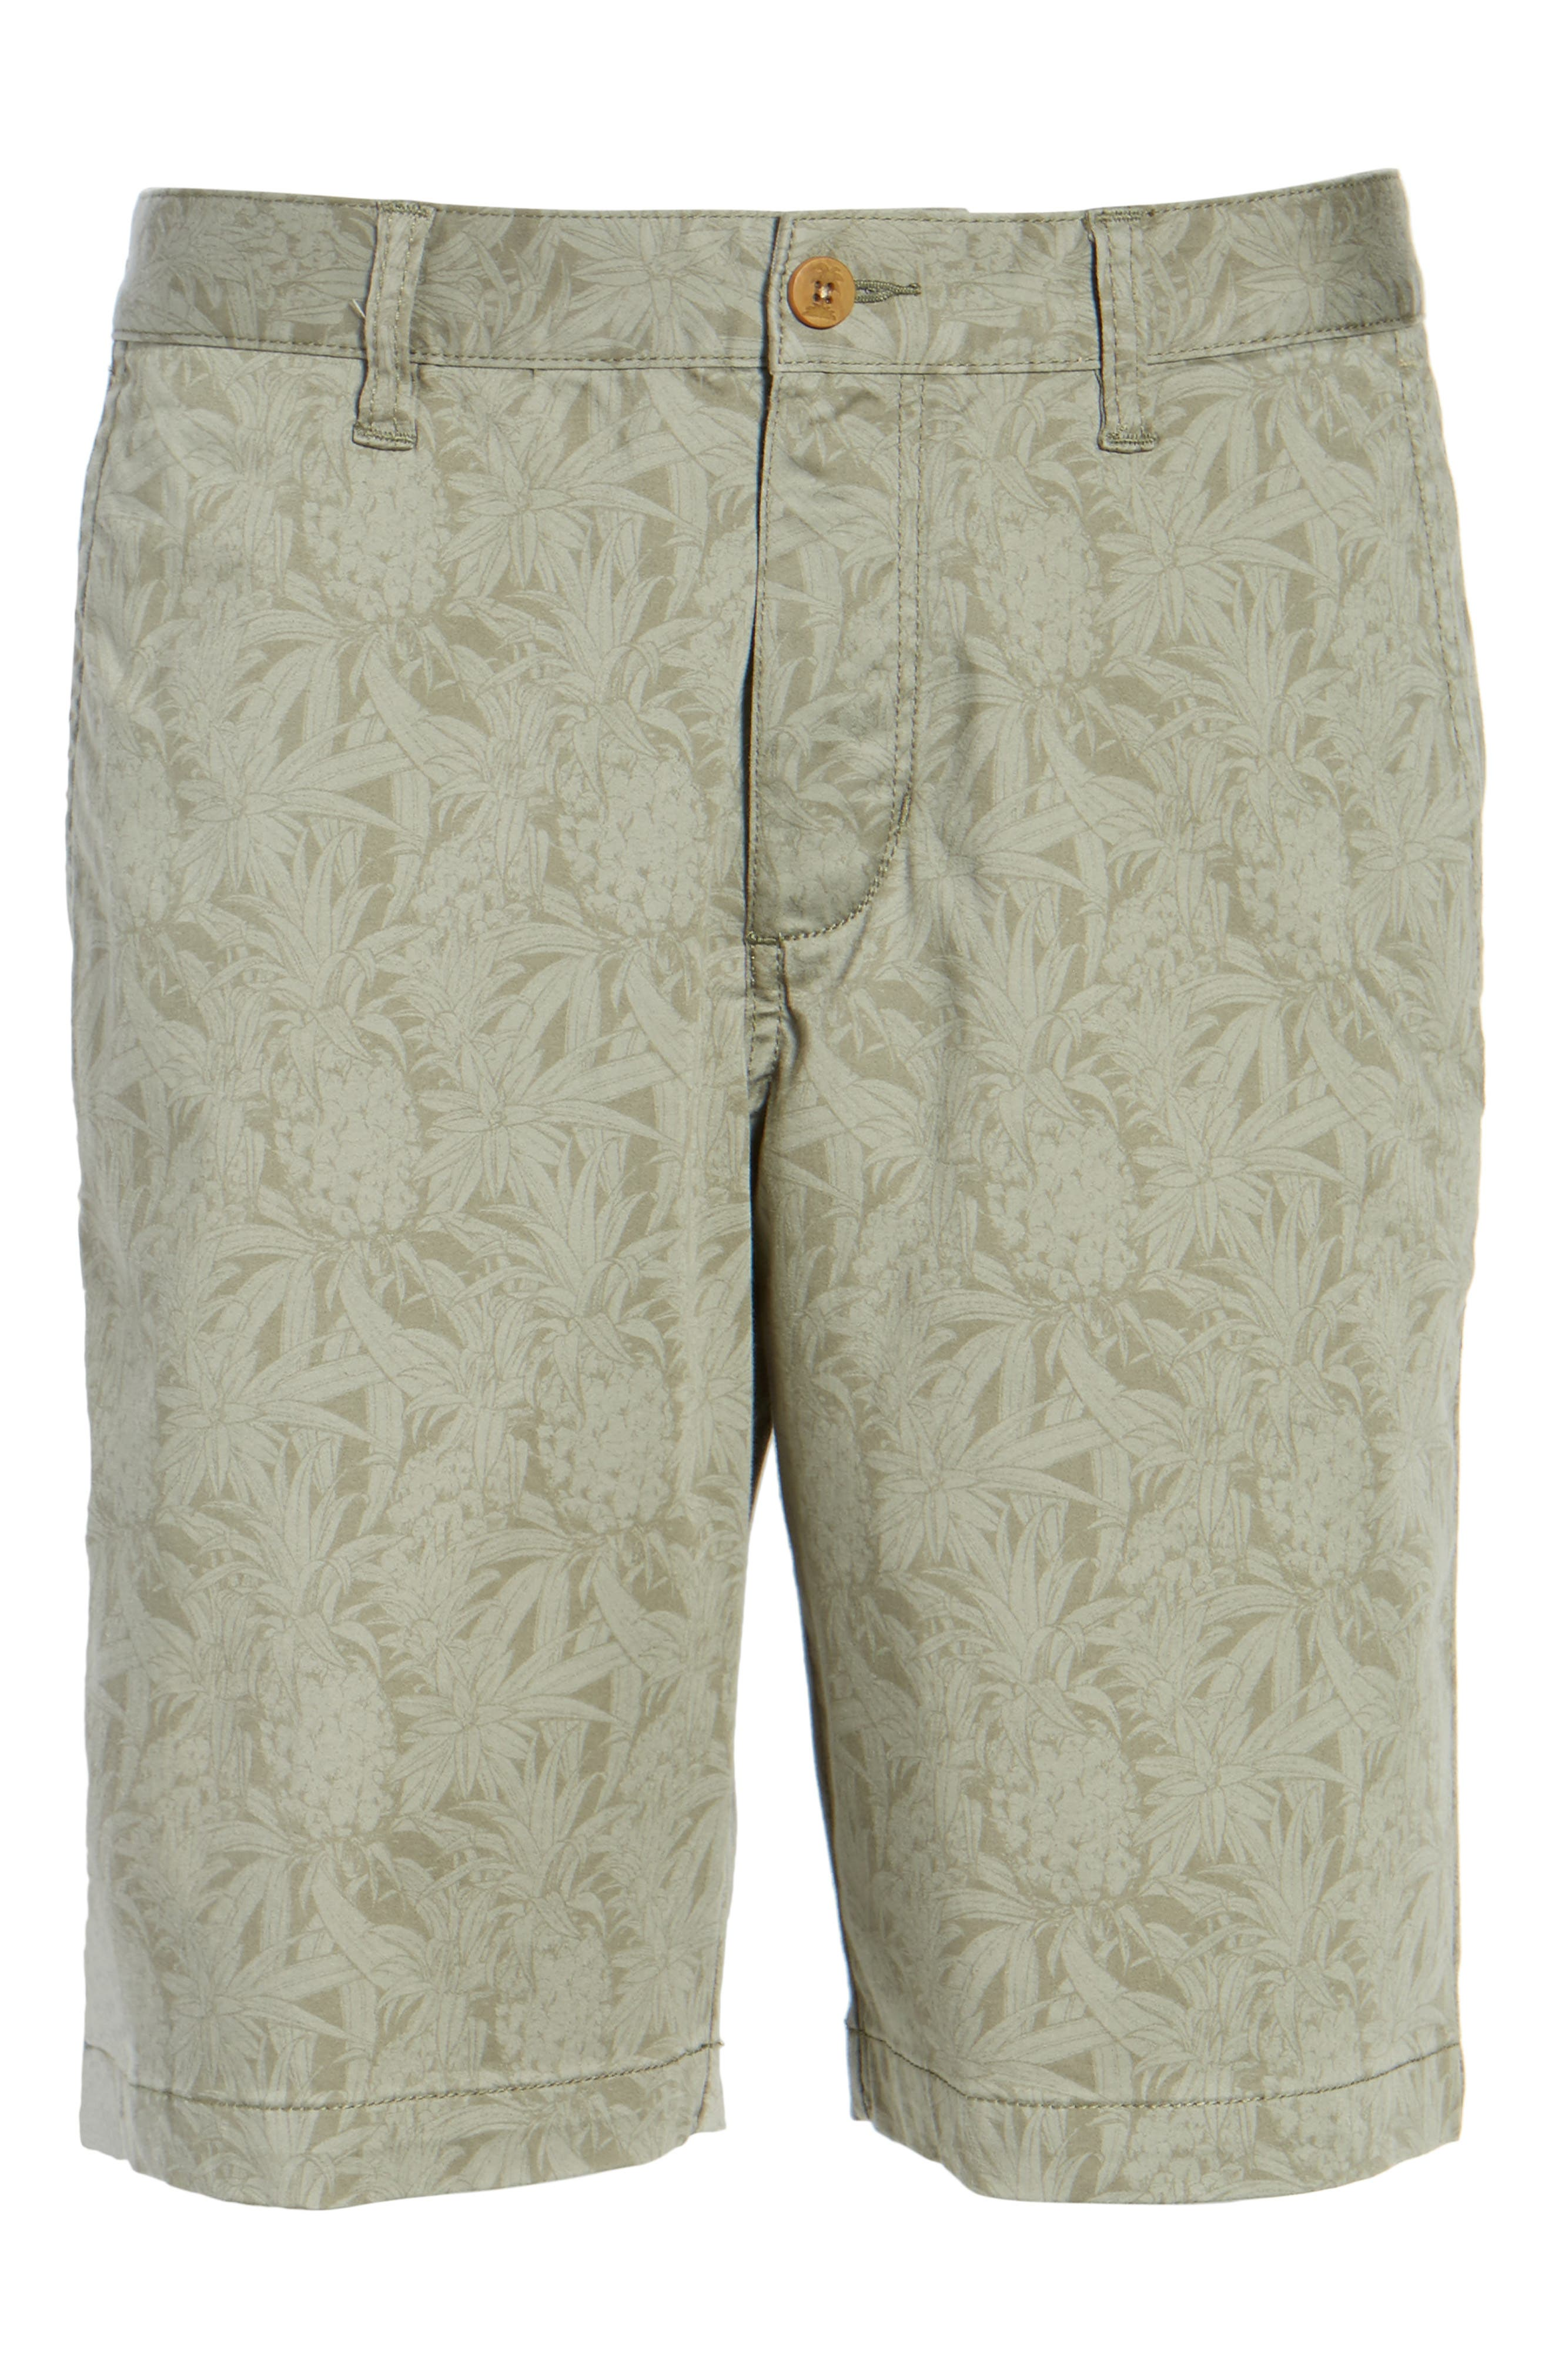 Camo Tropic Standard Fit Chino Shorts,                             Alternate thumbnail 6, color,                             Dusty Olive